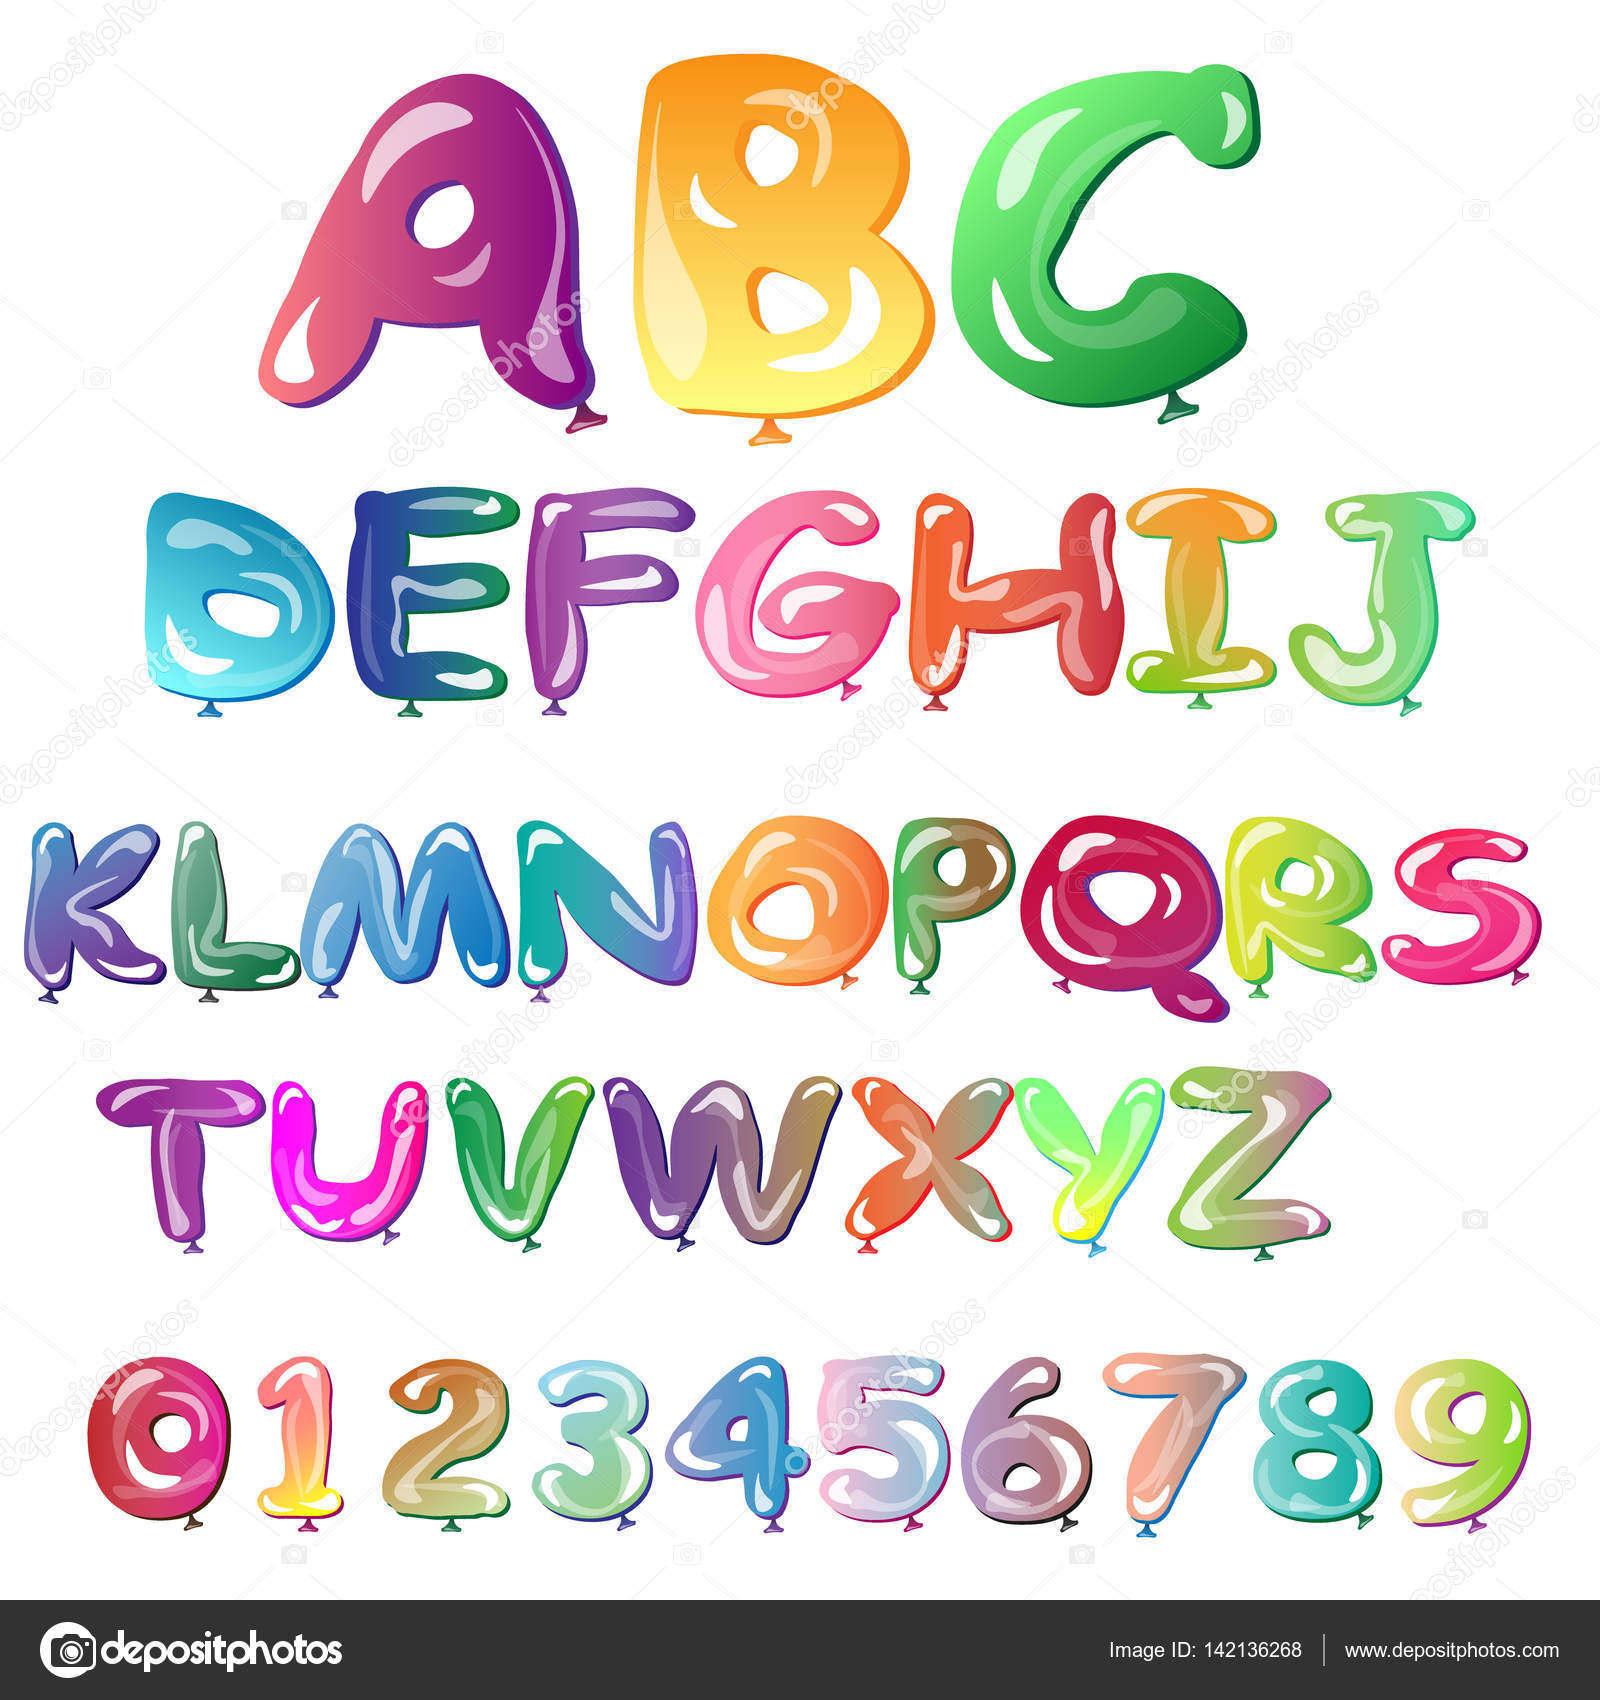 Alphabet In The Form Of Balloons Easy Editable Vector File Perfect Letters Design For